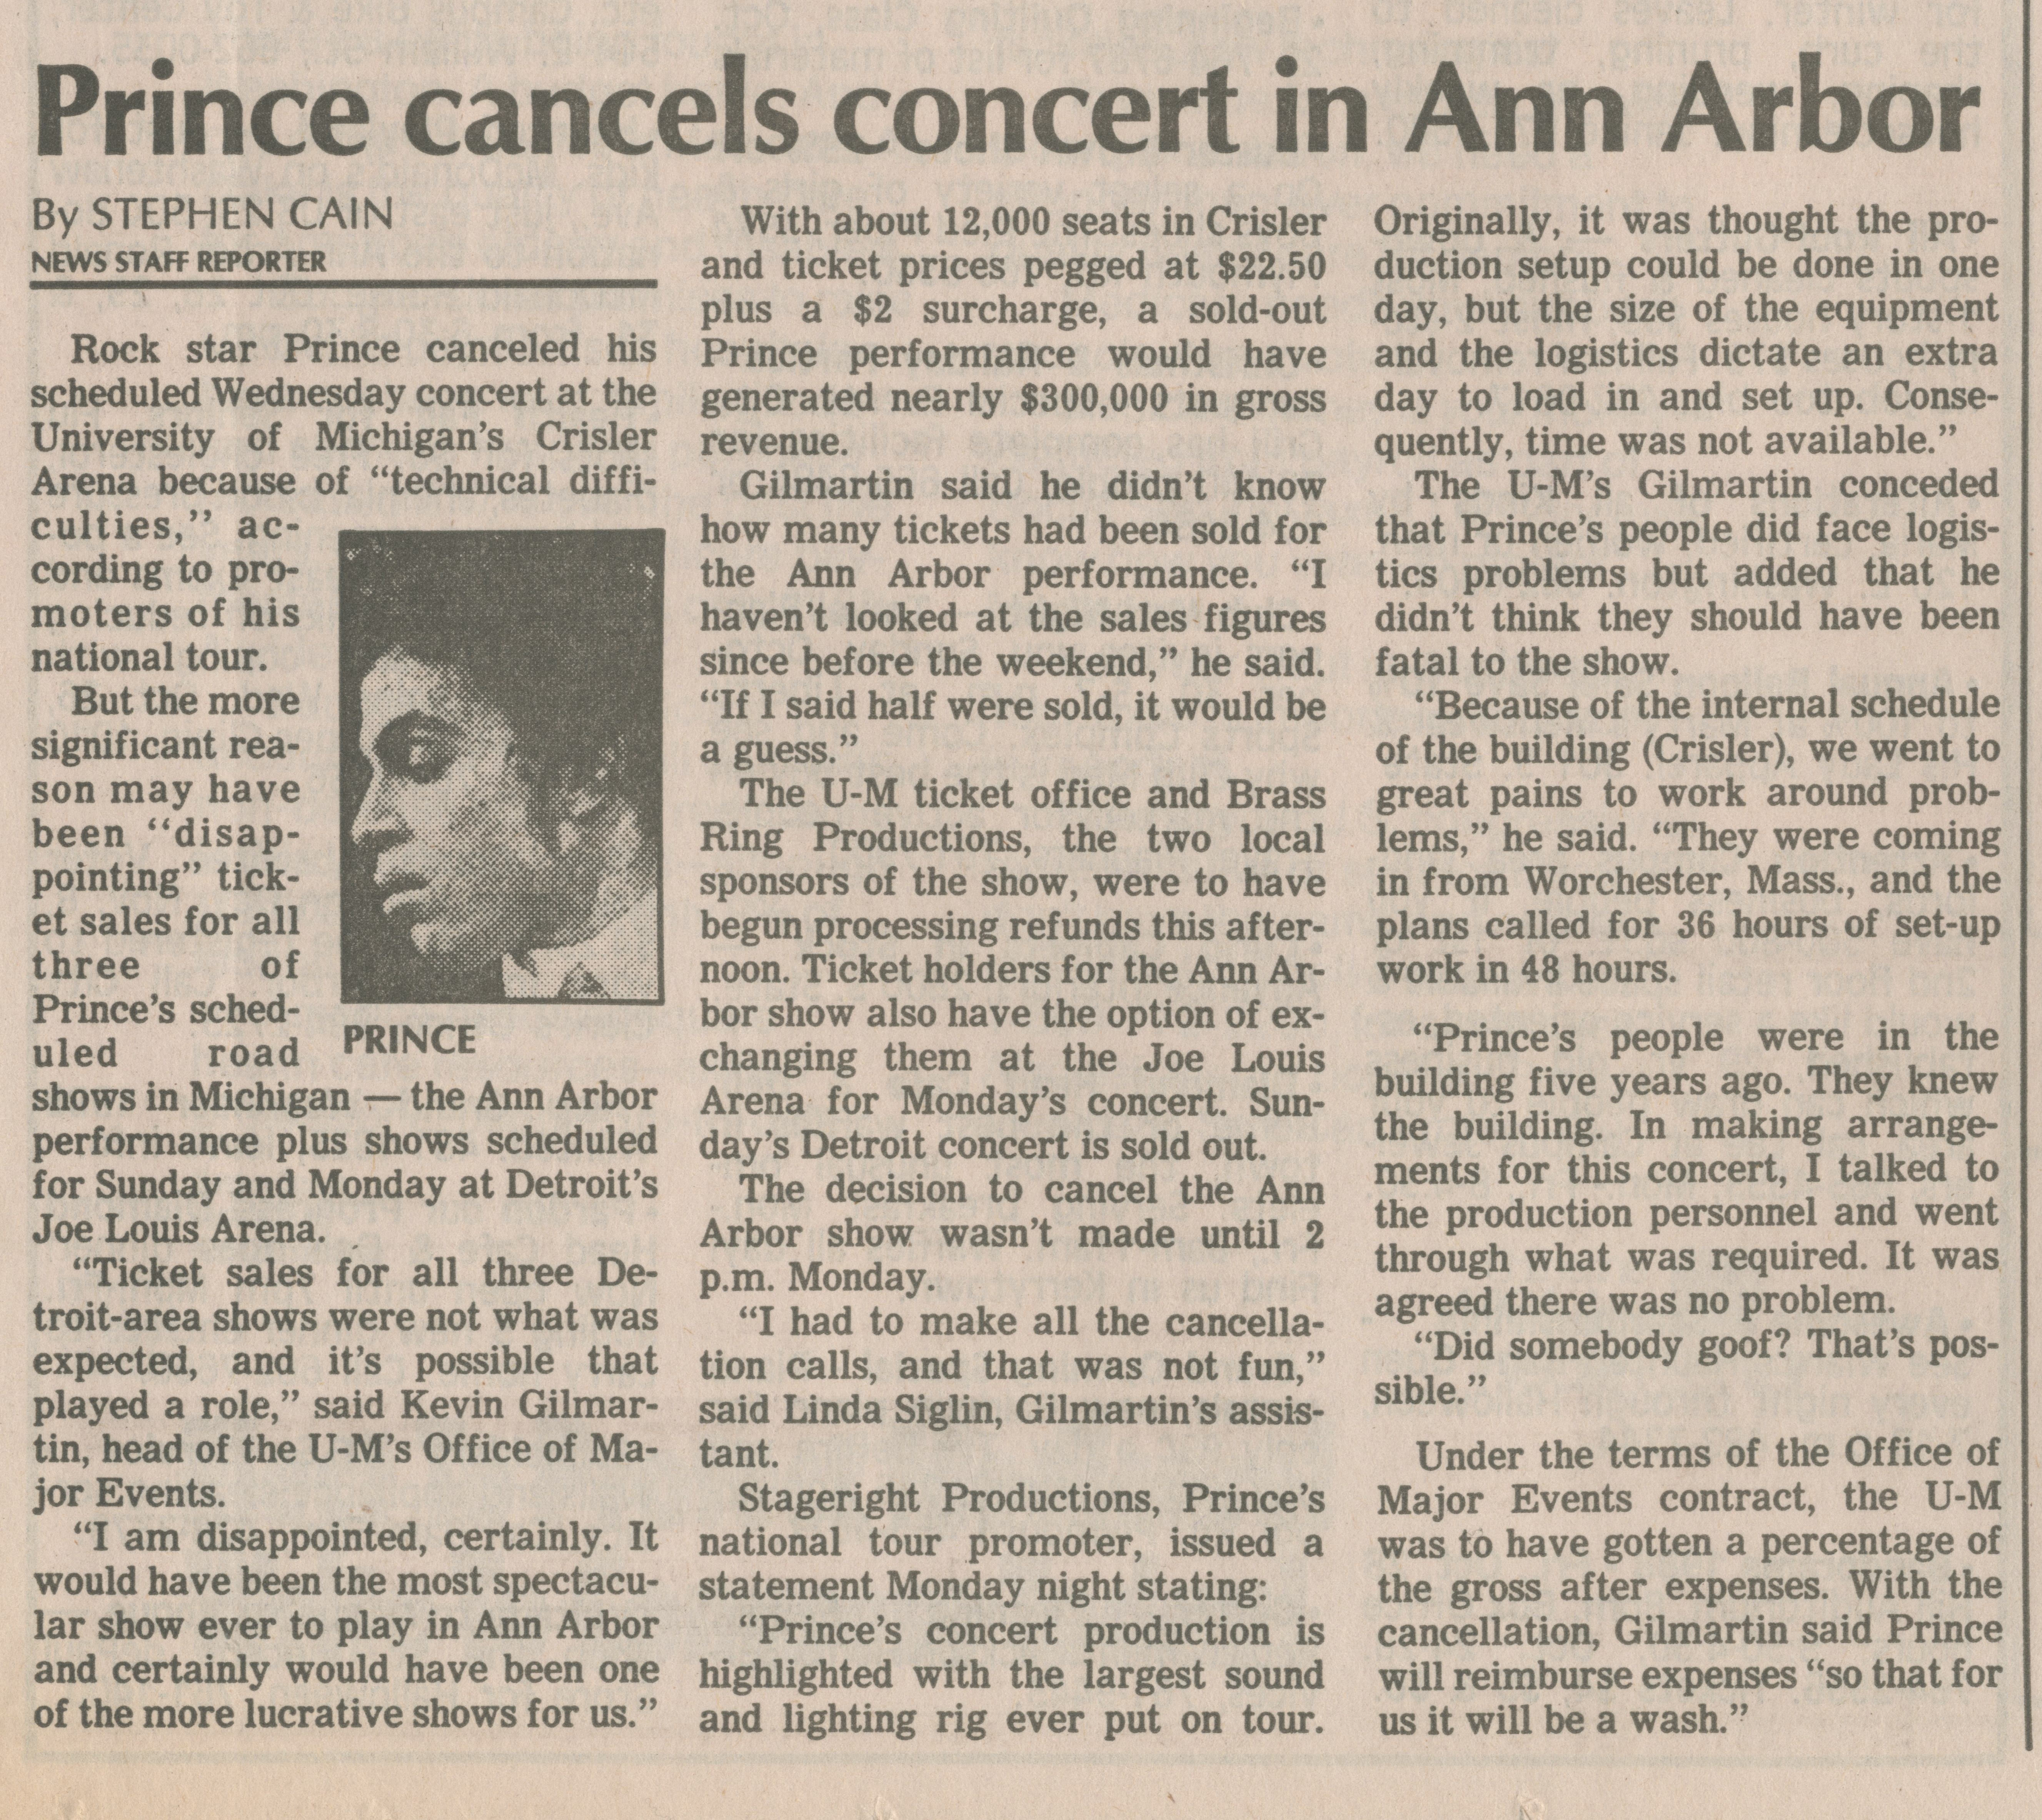 Prince cancels concert in Ann Arbor image